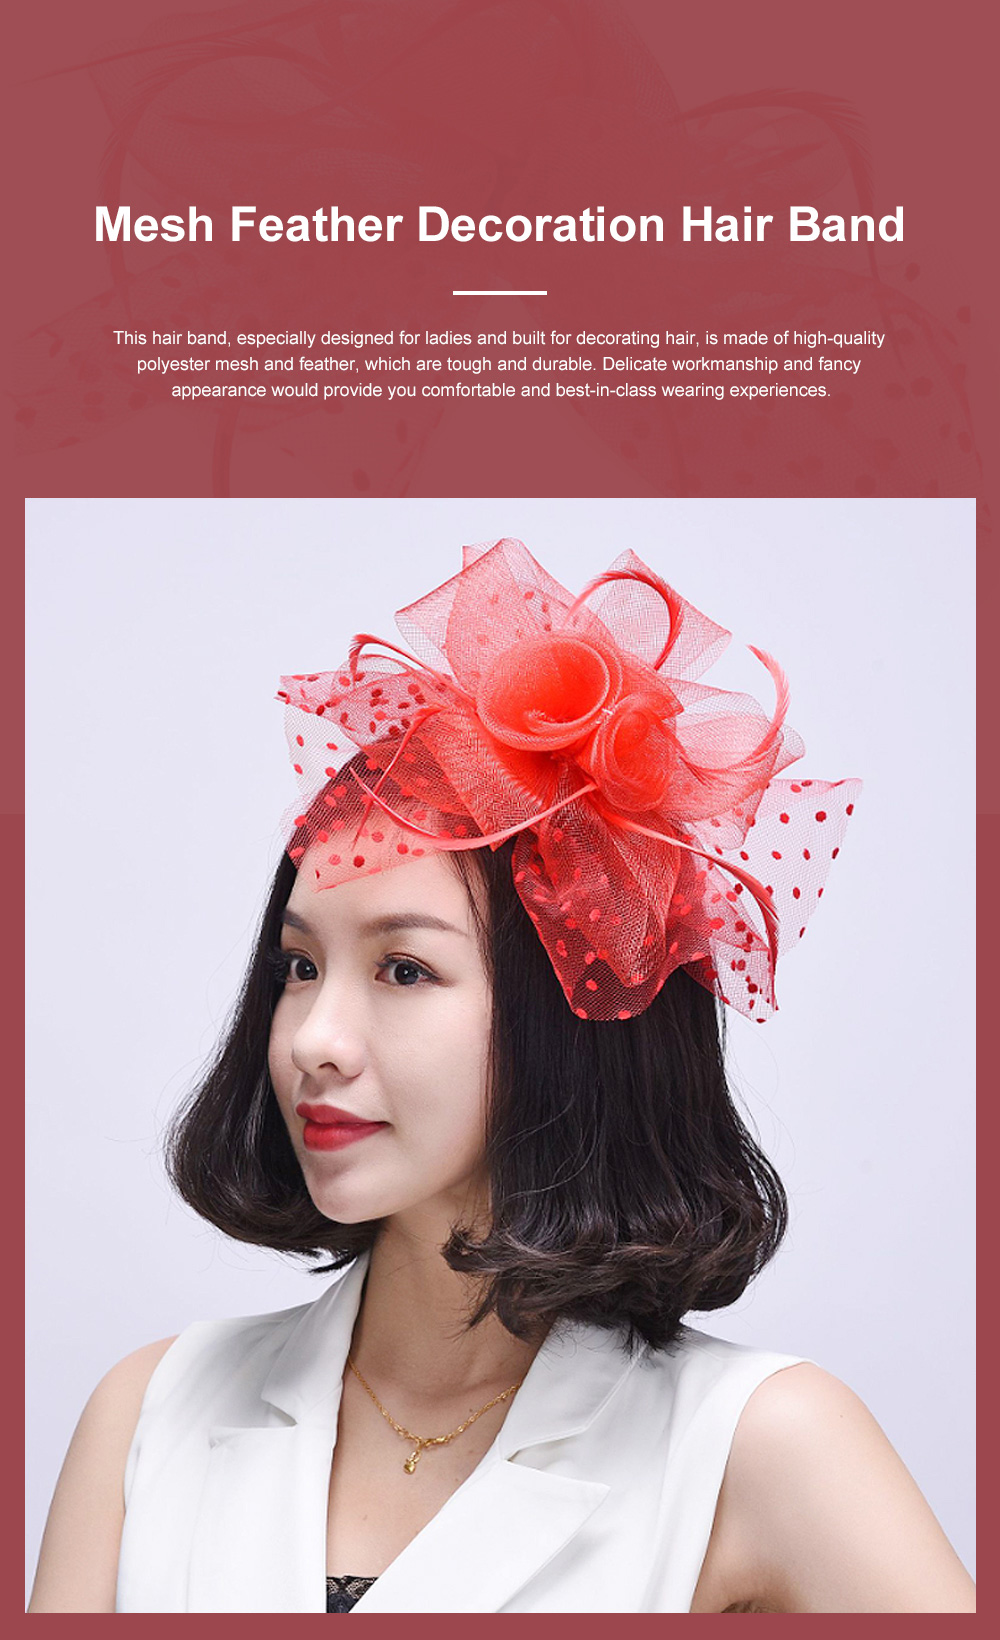 Fancy Flower Model Mesh Feather Decoration Hair Band, Delicate Evening Party Ladies Hair Decoration Ornament 0